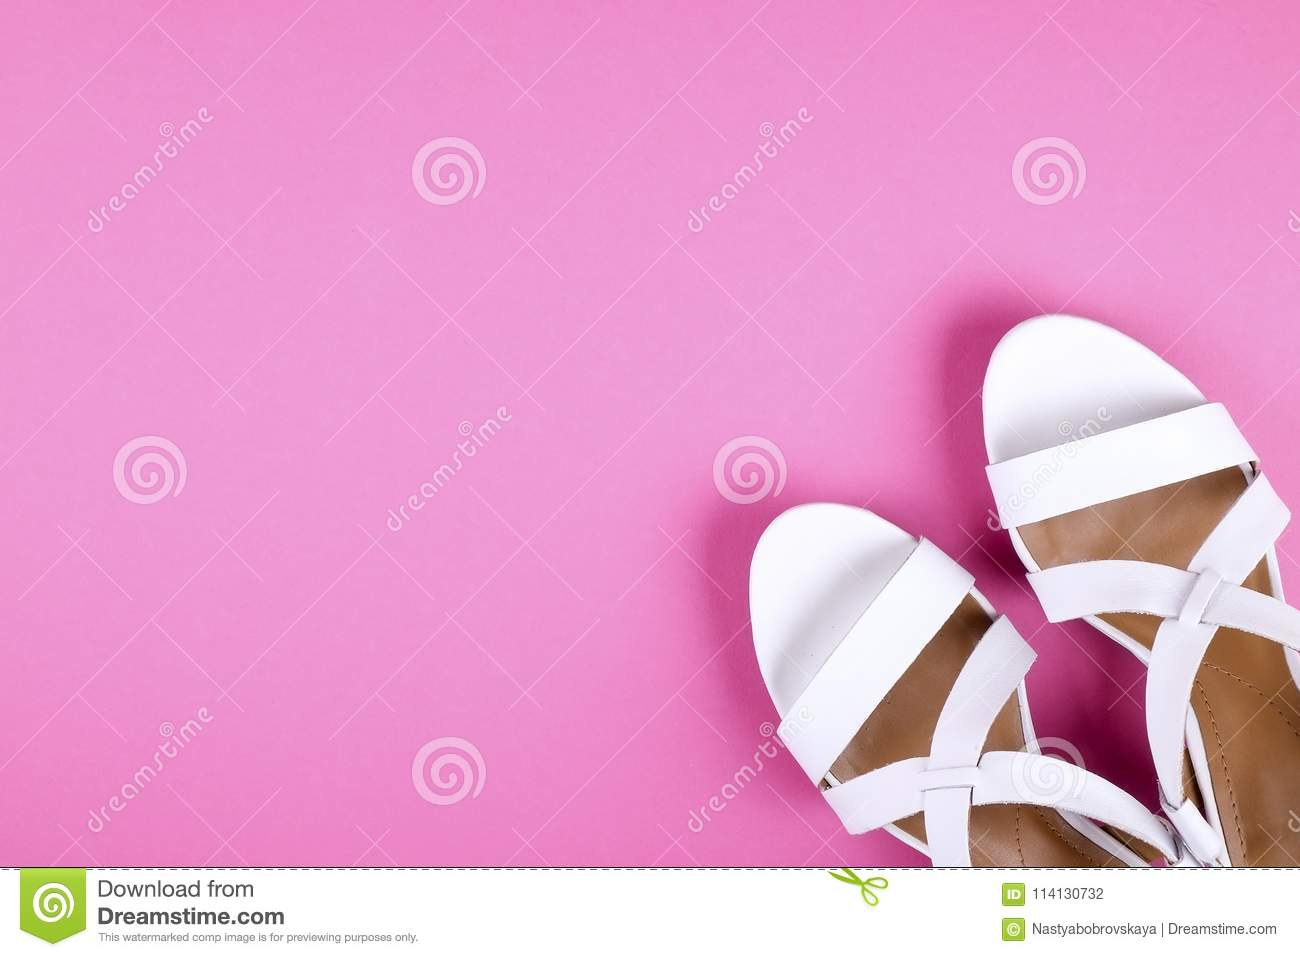 Top view of fashionable feminine medium heeled women`s leather shoes of  pastel colors on c9f9aaa5bd